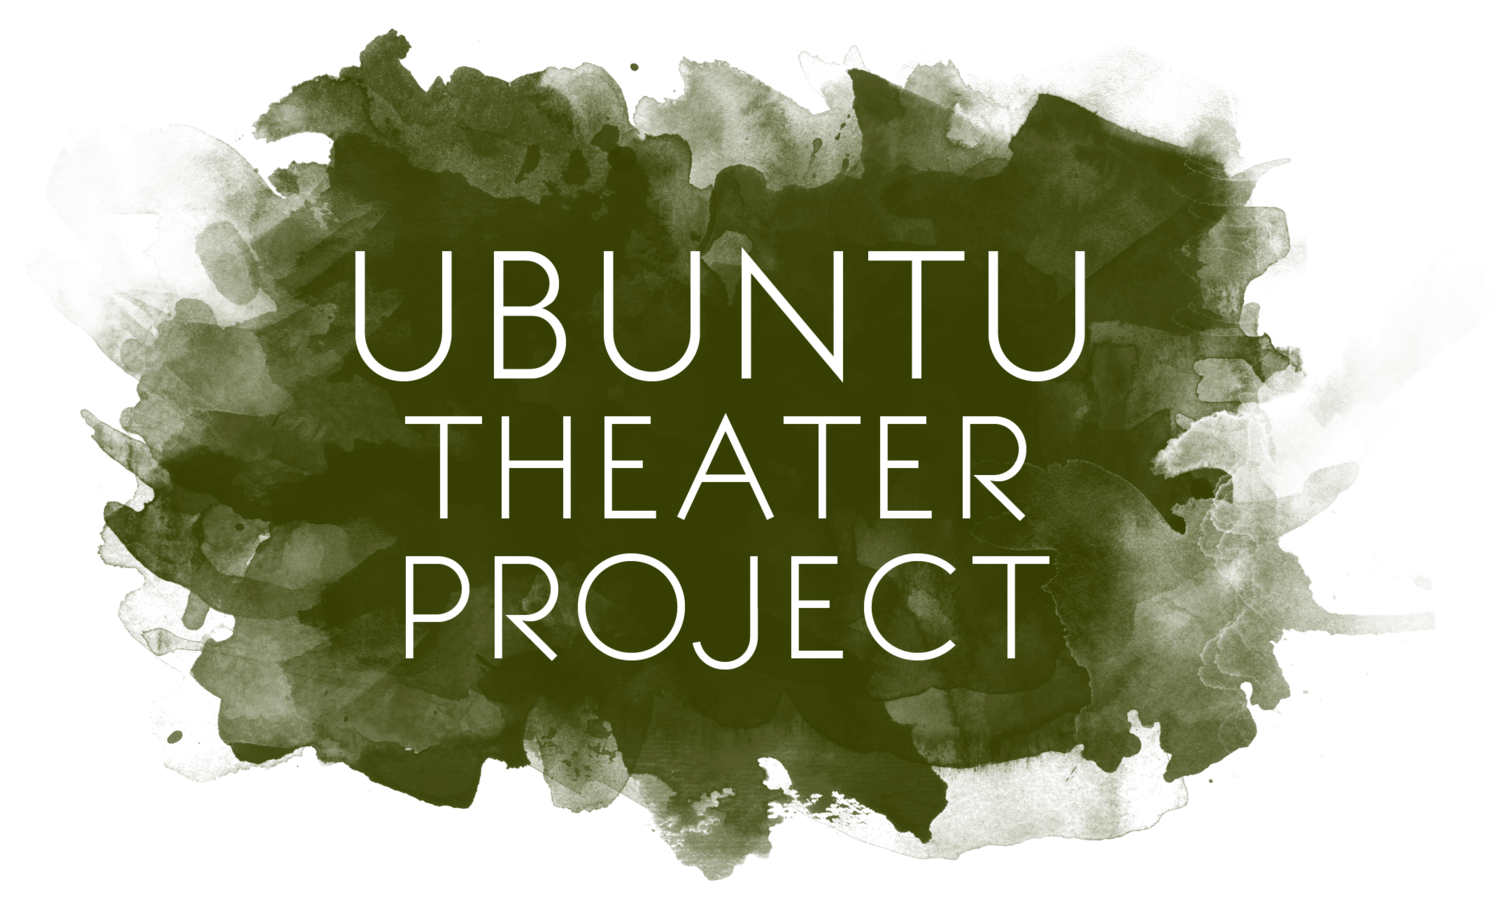 Ubuntu Theater Project